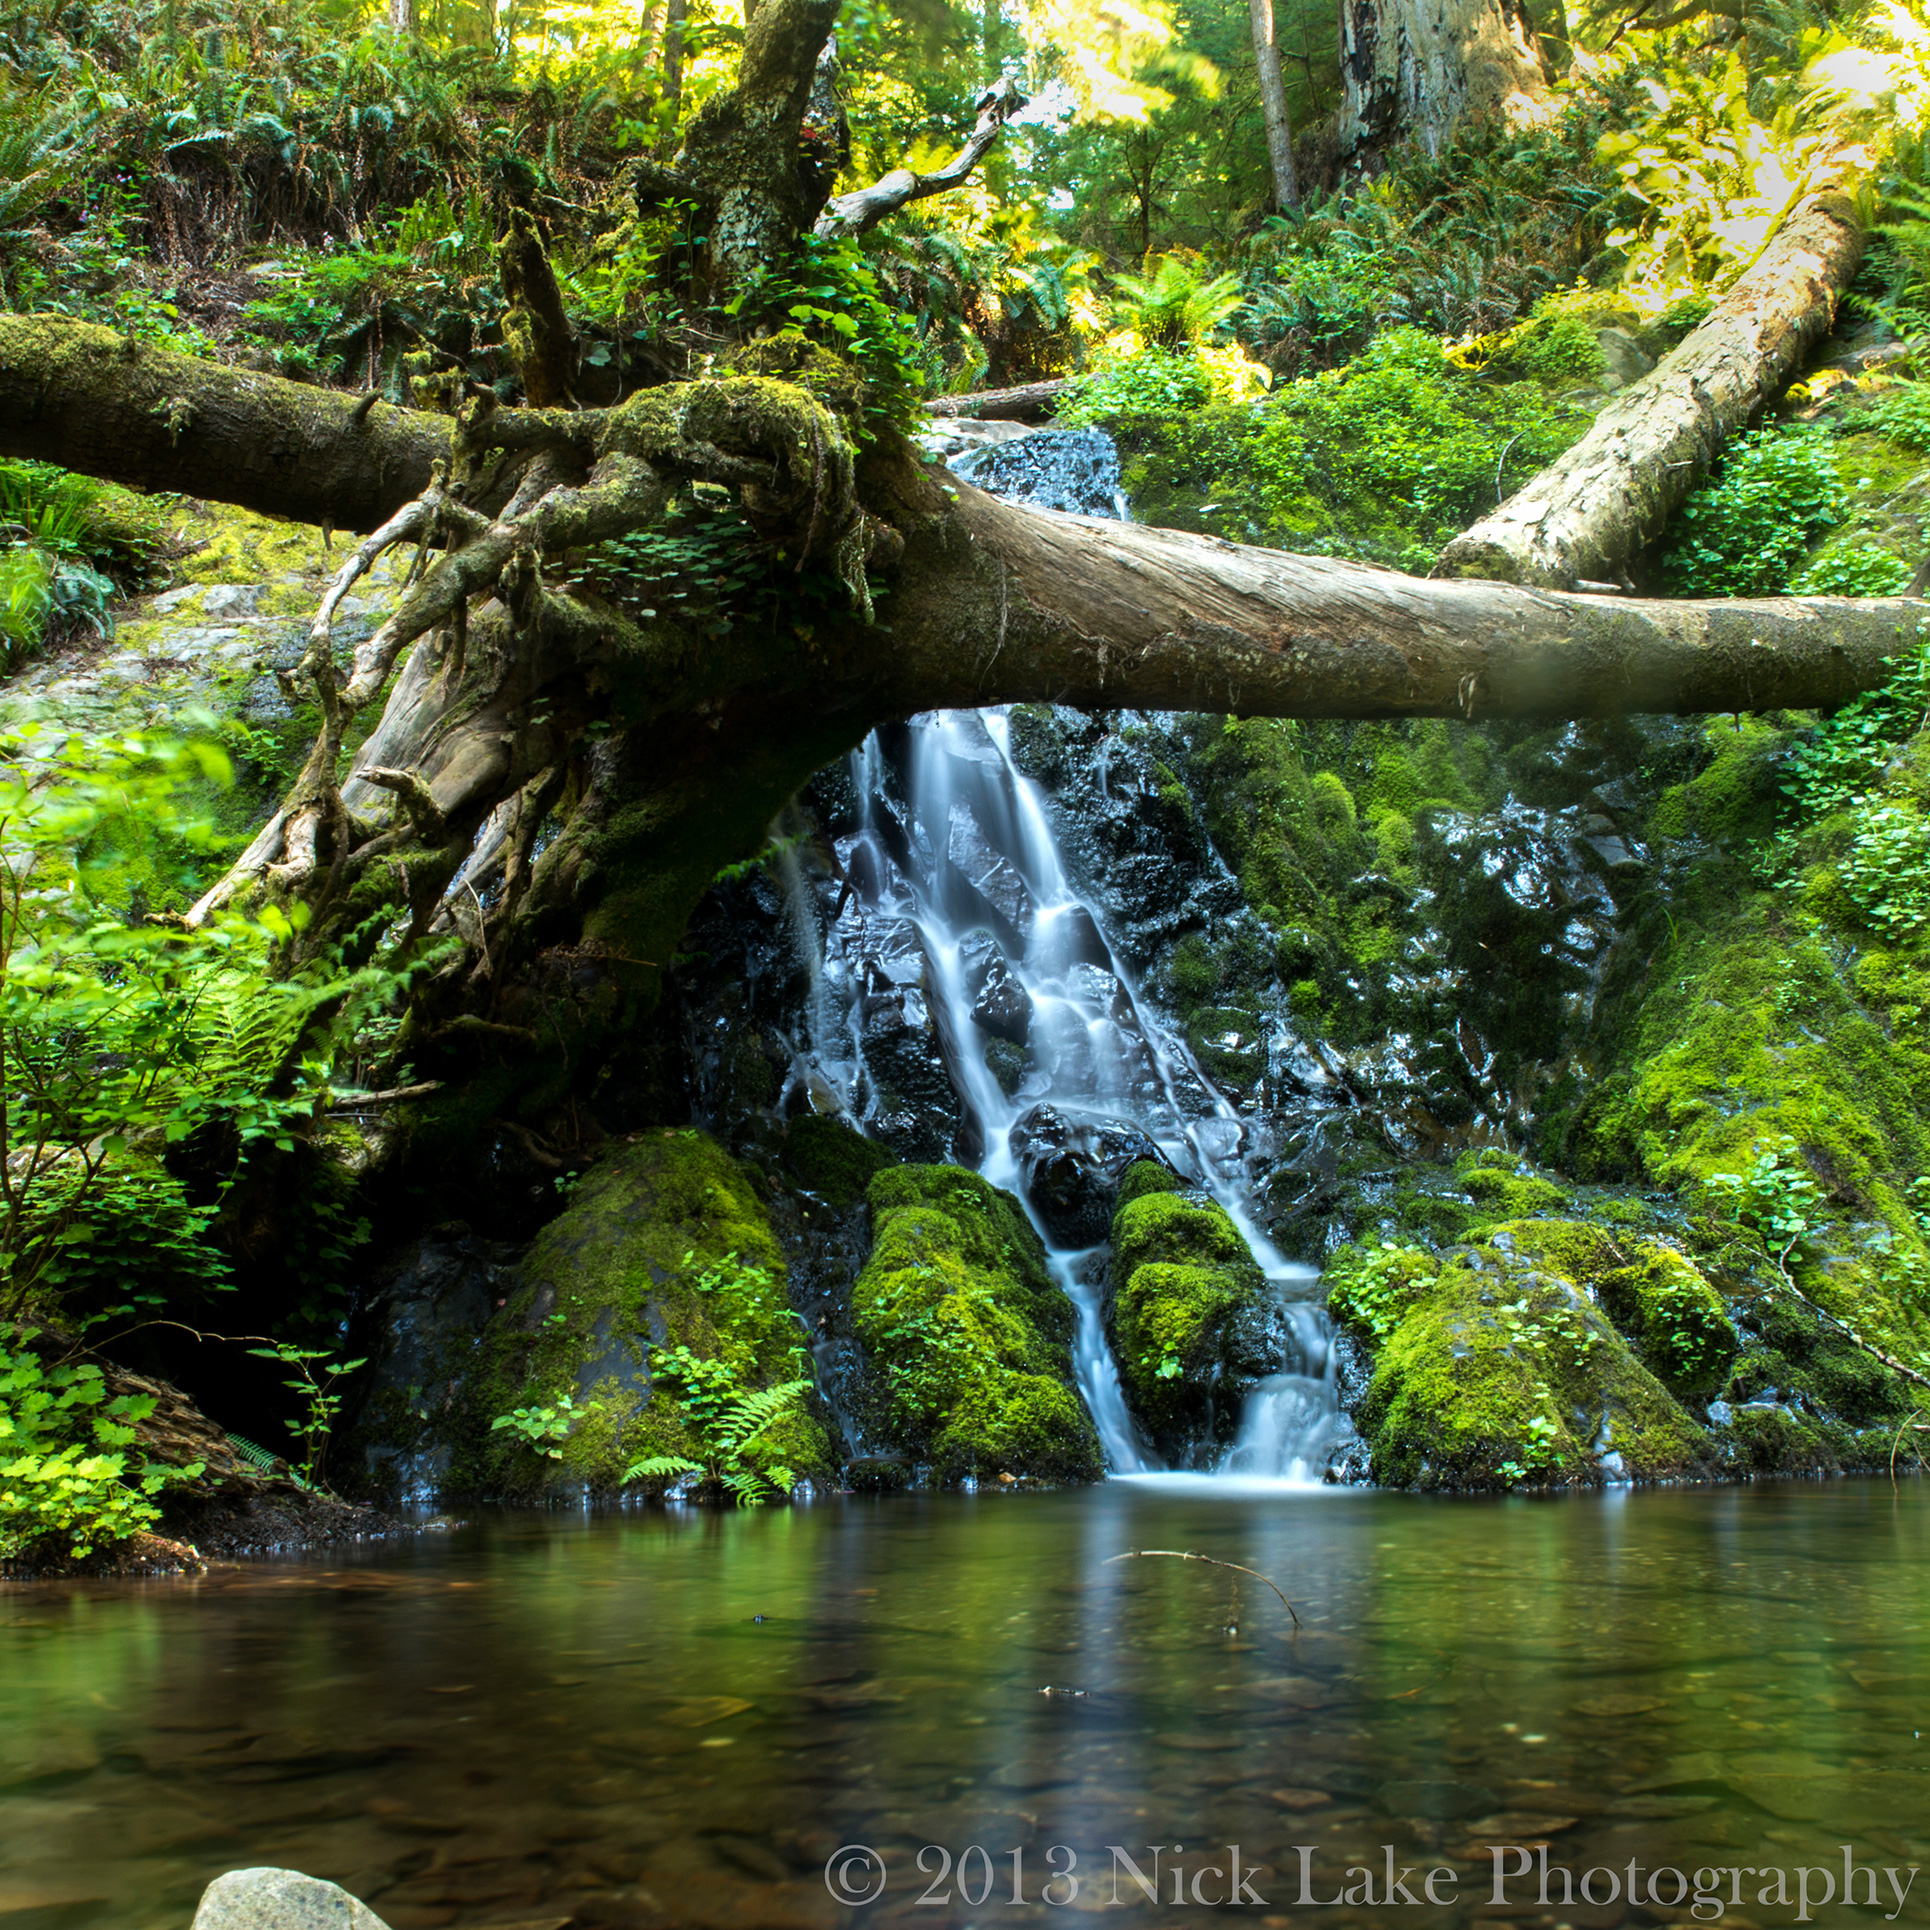 A gentle waterfall drops into a tranquil pool at the end of the Boy Scout Tree Trail